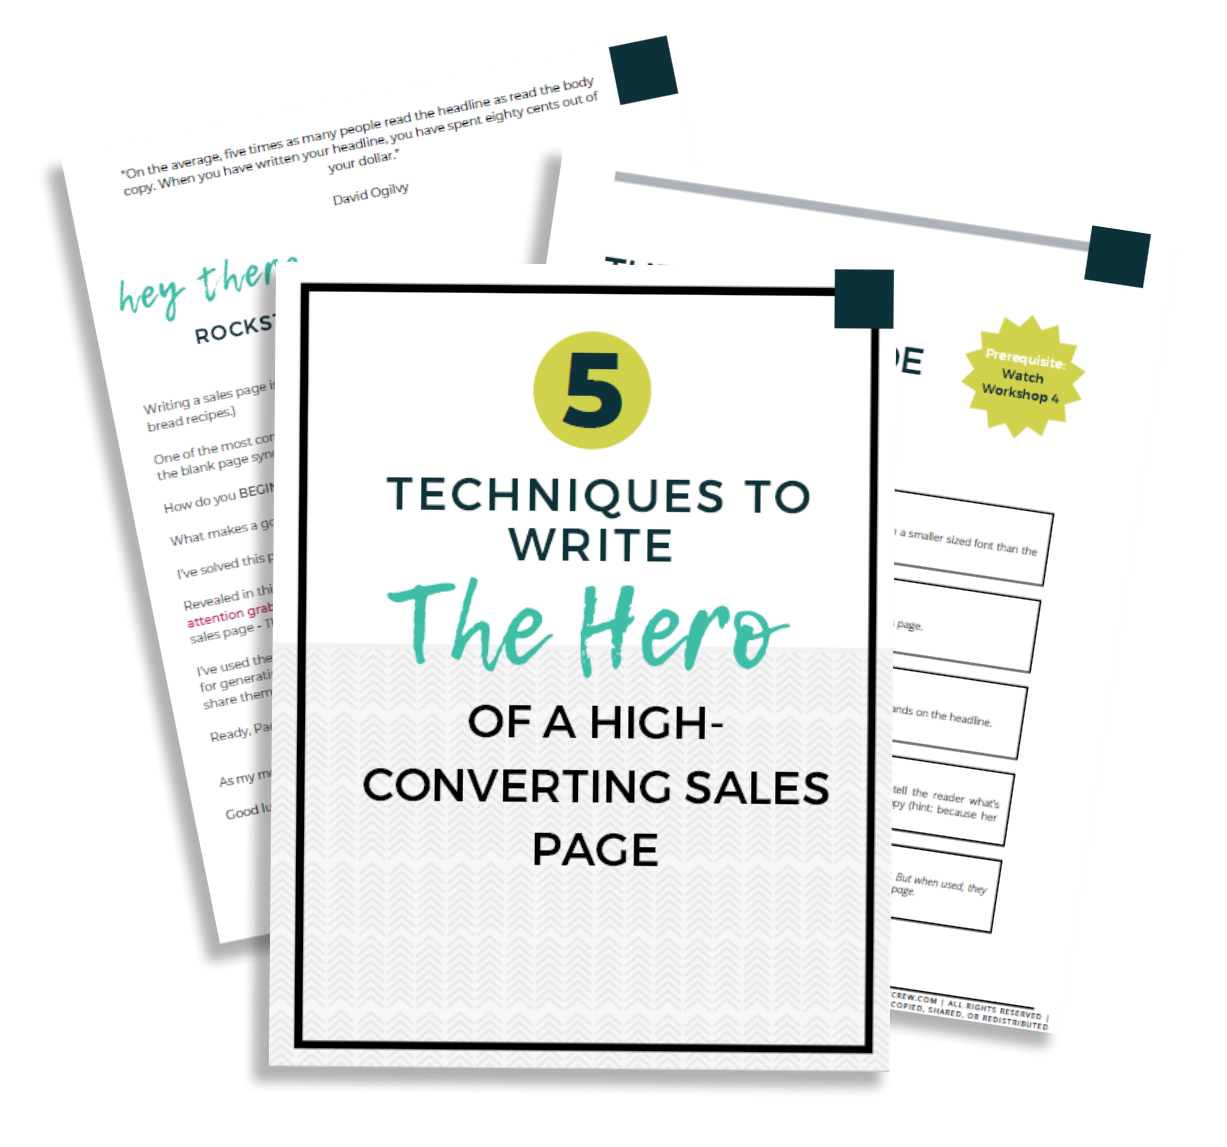 The Copy Crew - Want 5 Compelling Hooks & Headlines To Start Your Sales Page